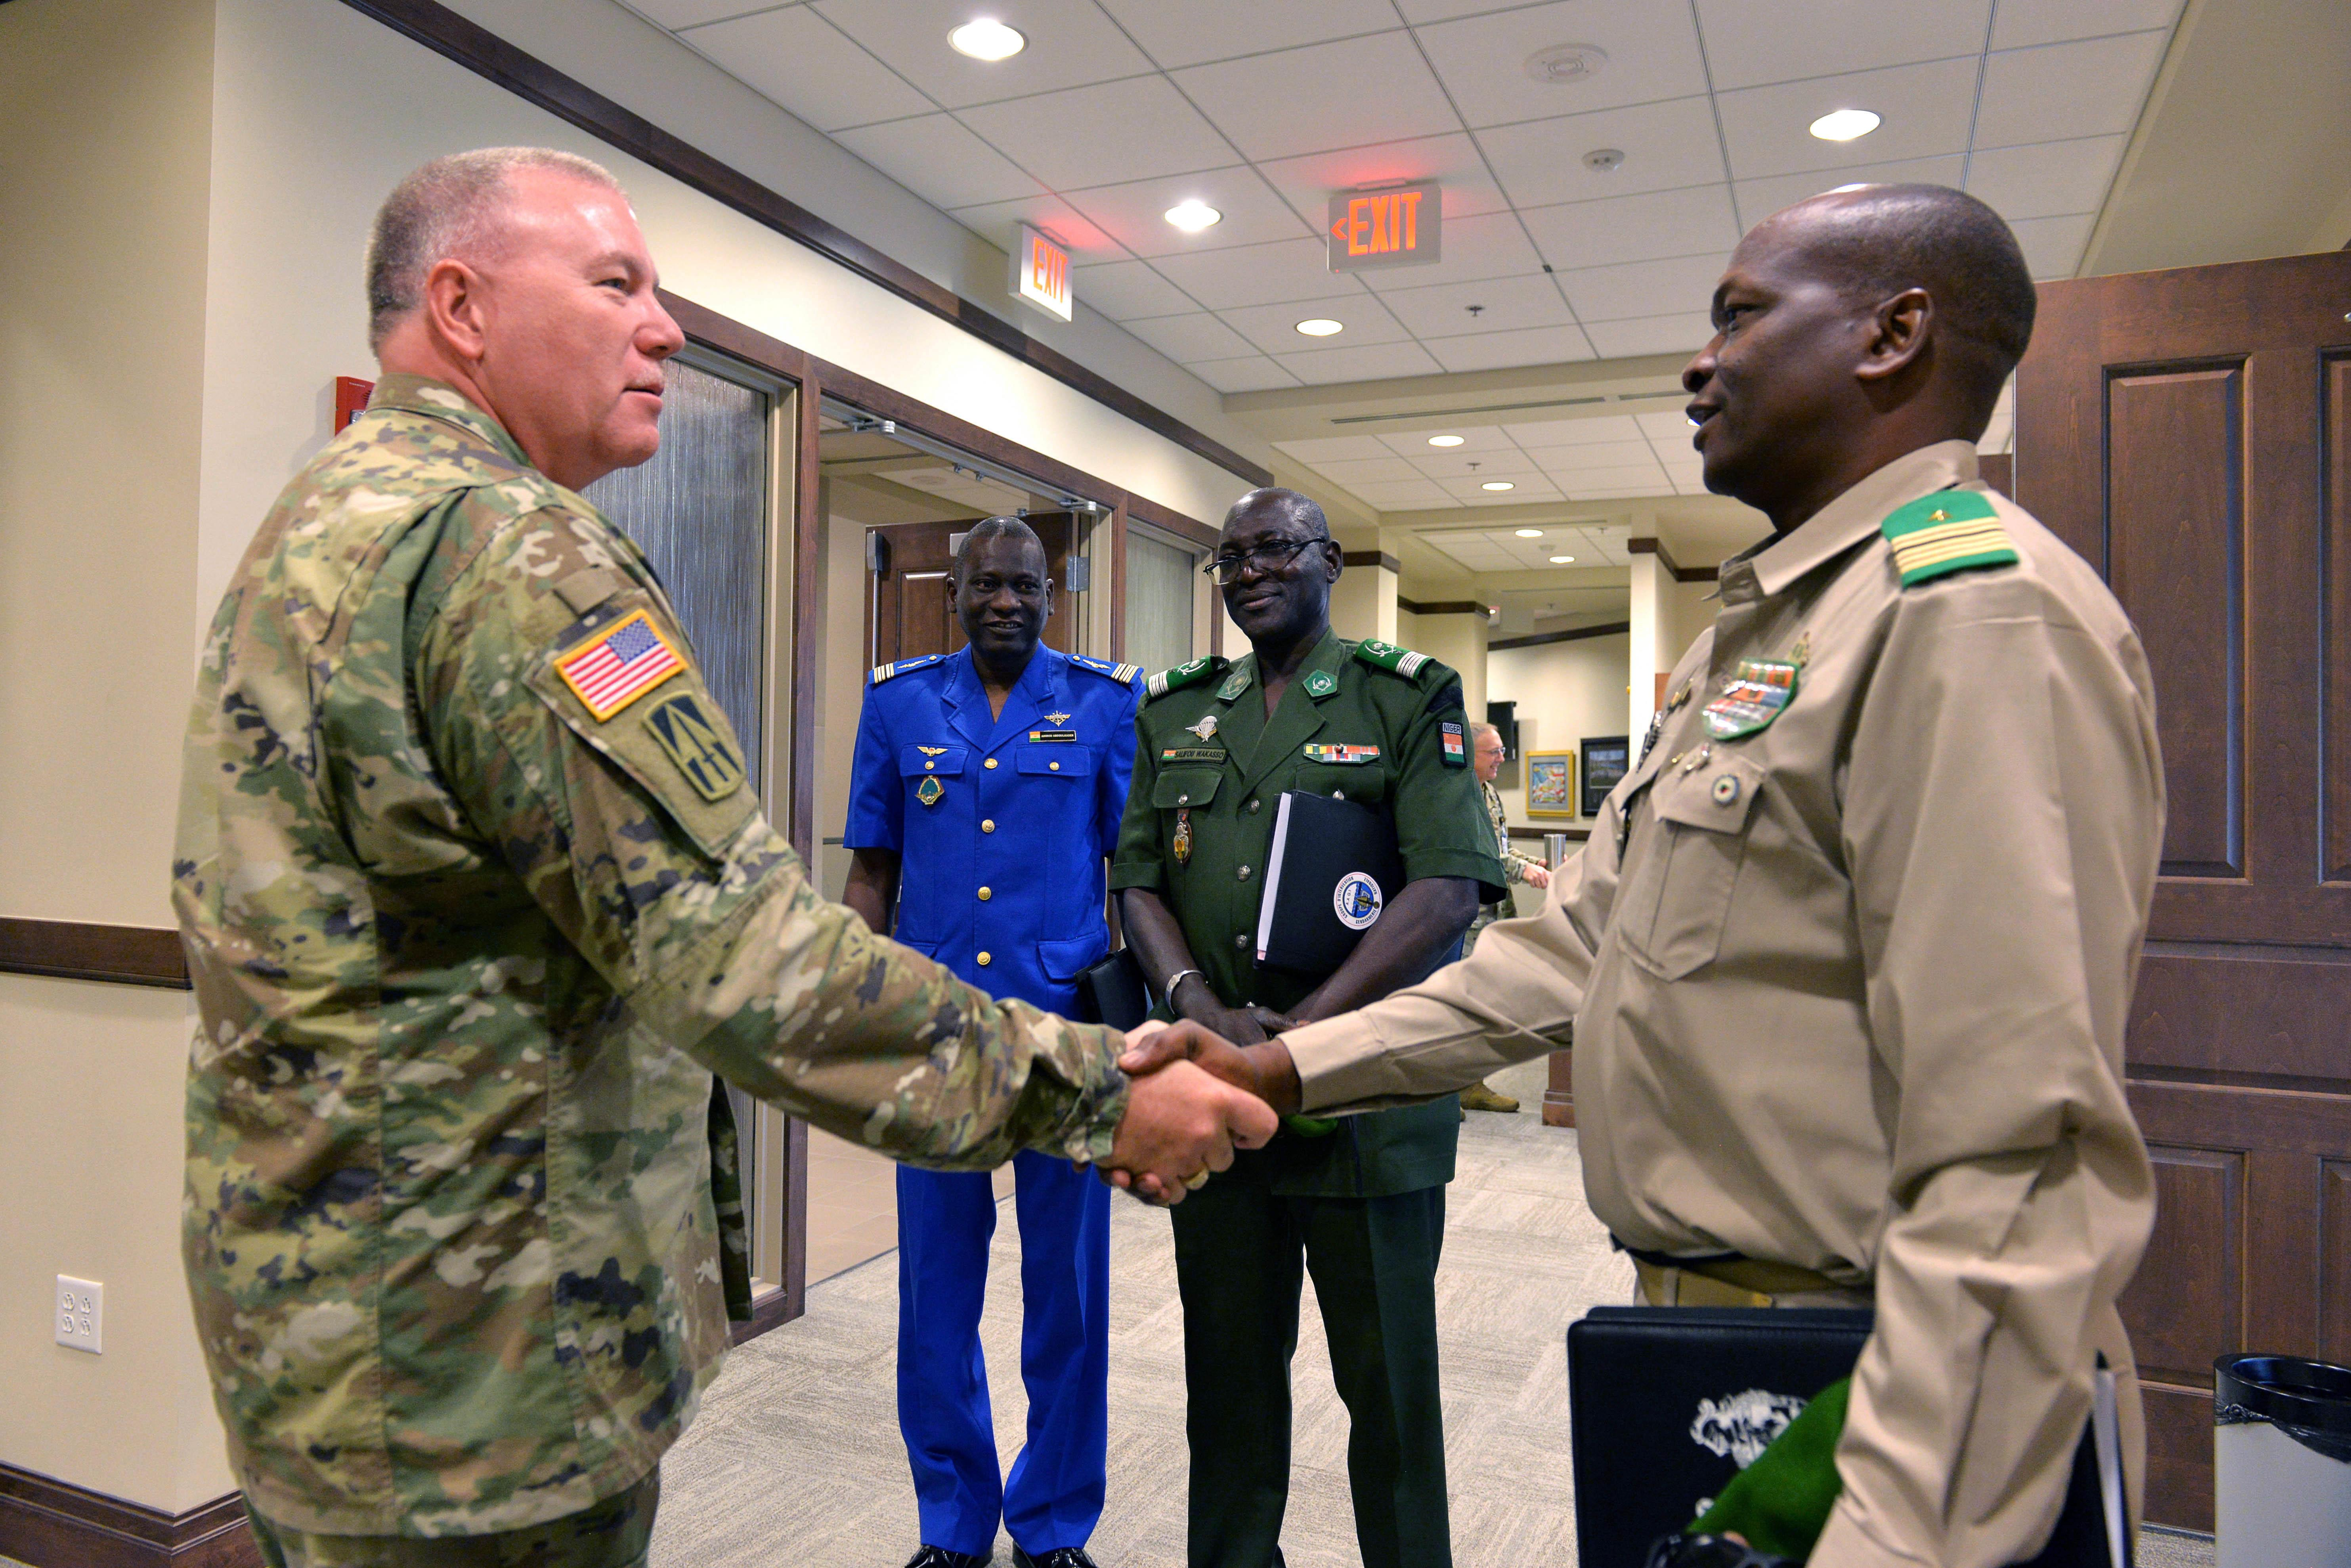 Indiana National Guard's Director of Joint Staff Brig. Gen. Ronald A. Westfall greats Colonel-Major Soumana Kalkoye dit Fodo the Chief of Bureau of Studies for the Nigerien Ministry of Defense. (Photo by Sgt. 1st Class Lasima O. Packett/Released)